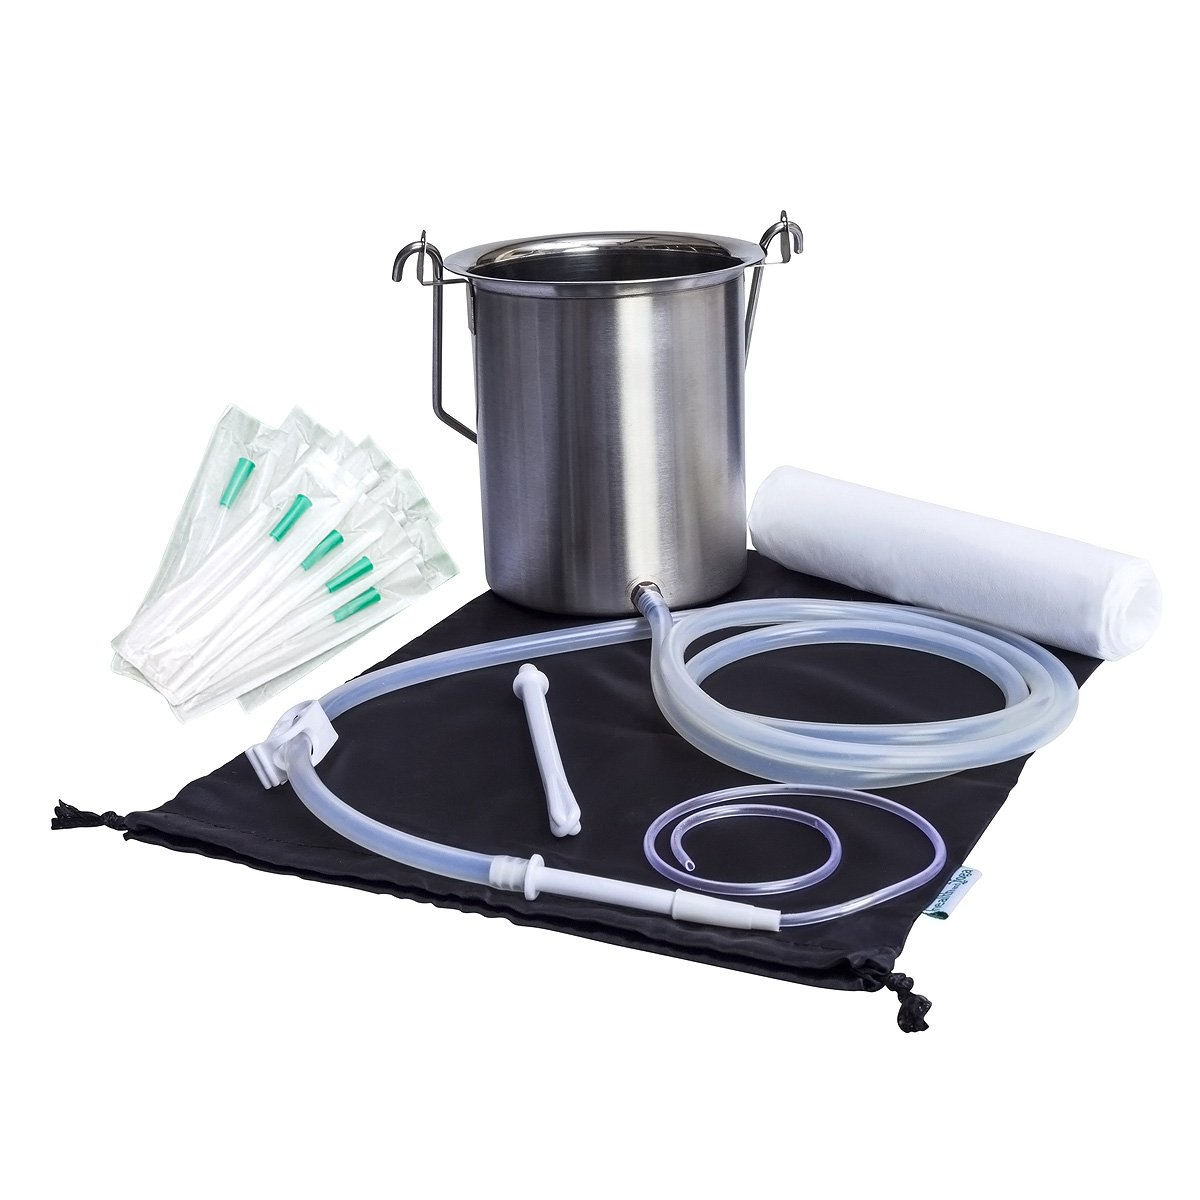 Super Quality Surgical Steel Grade Enema Bucket Kit with Platinum Cured Silicone Tubing - 2 Quart Capacity with Shower Suspension - BPA, Phthalate Free Components and Enema Sheet (Plus 10 Soft Tips)